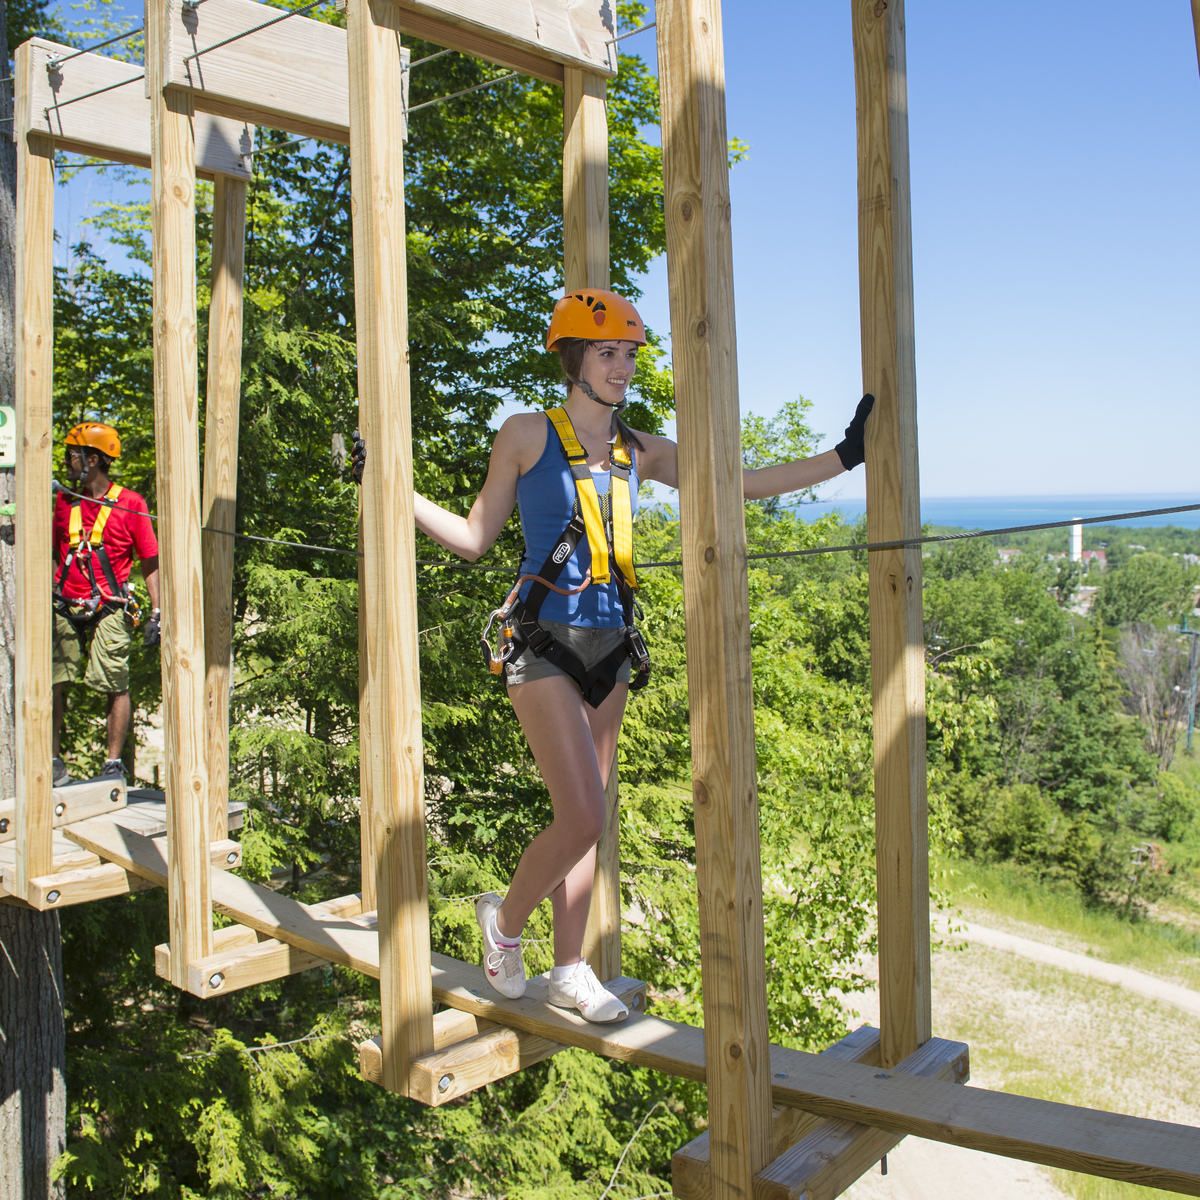 3. Challenge Yourself With a Ropes Course in the Woods